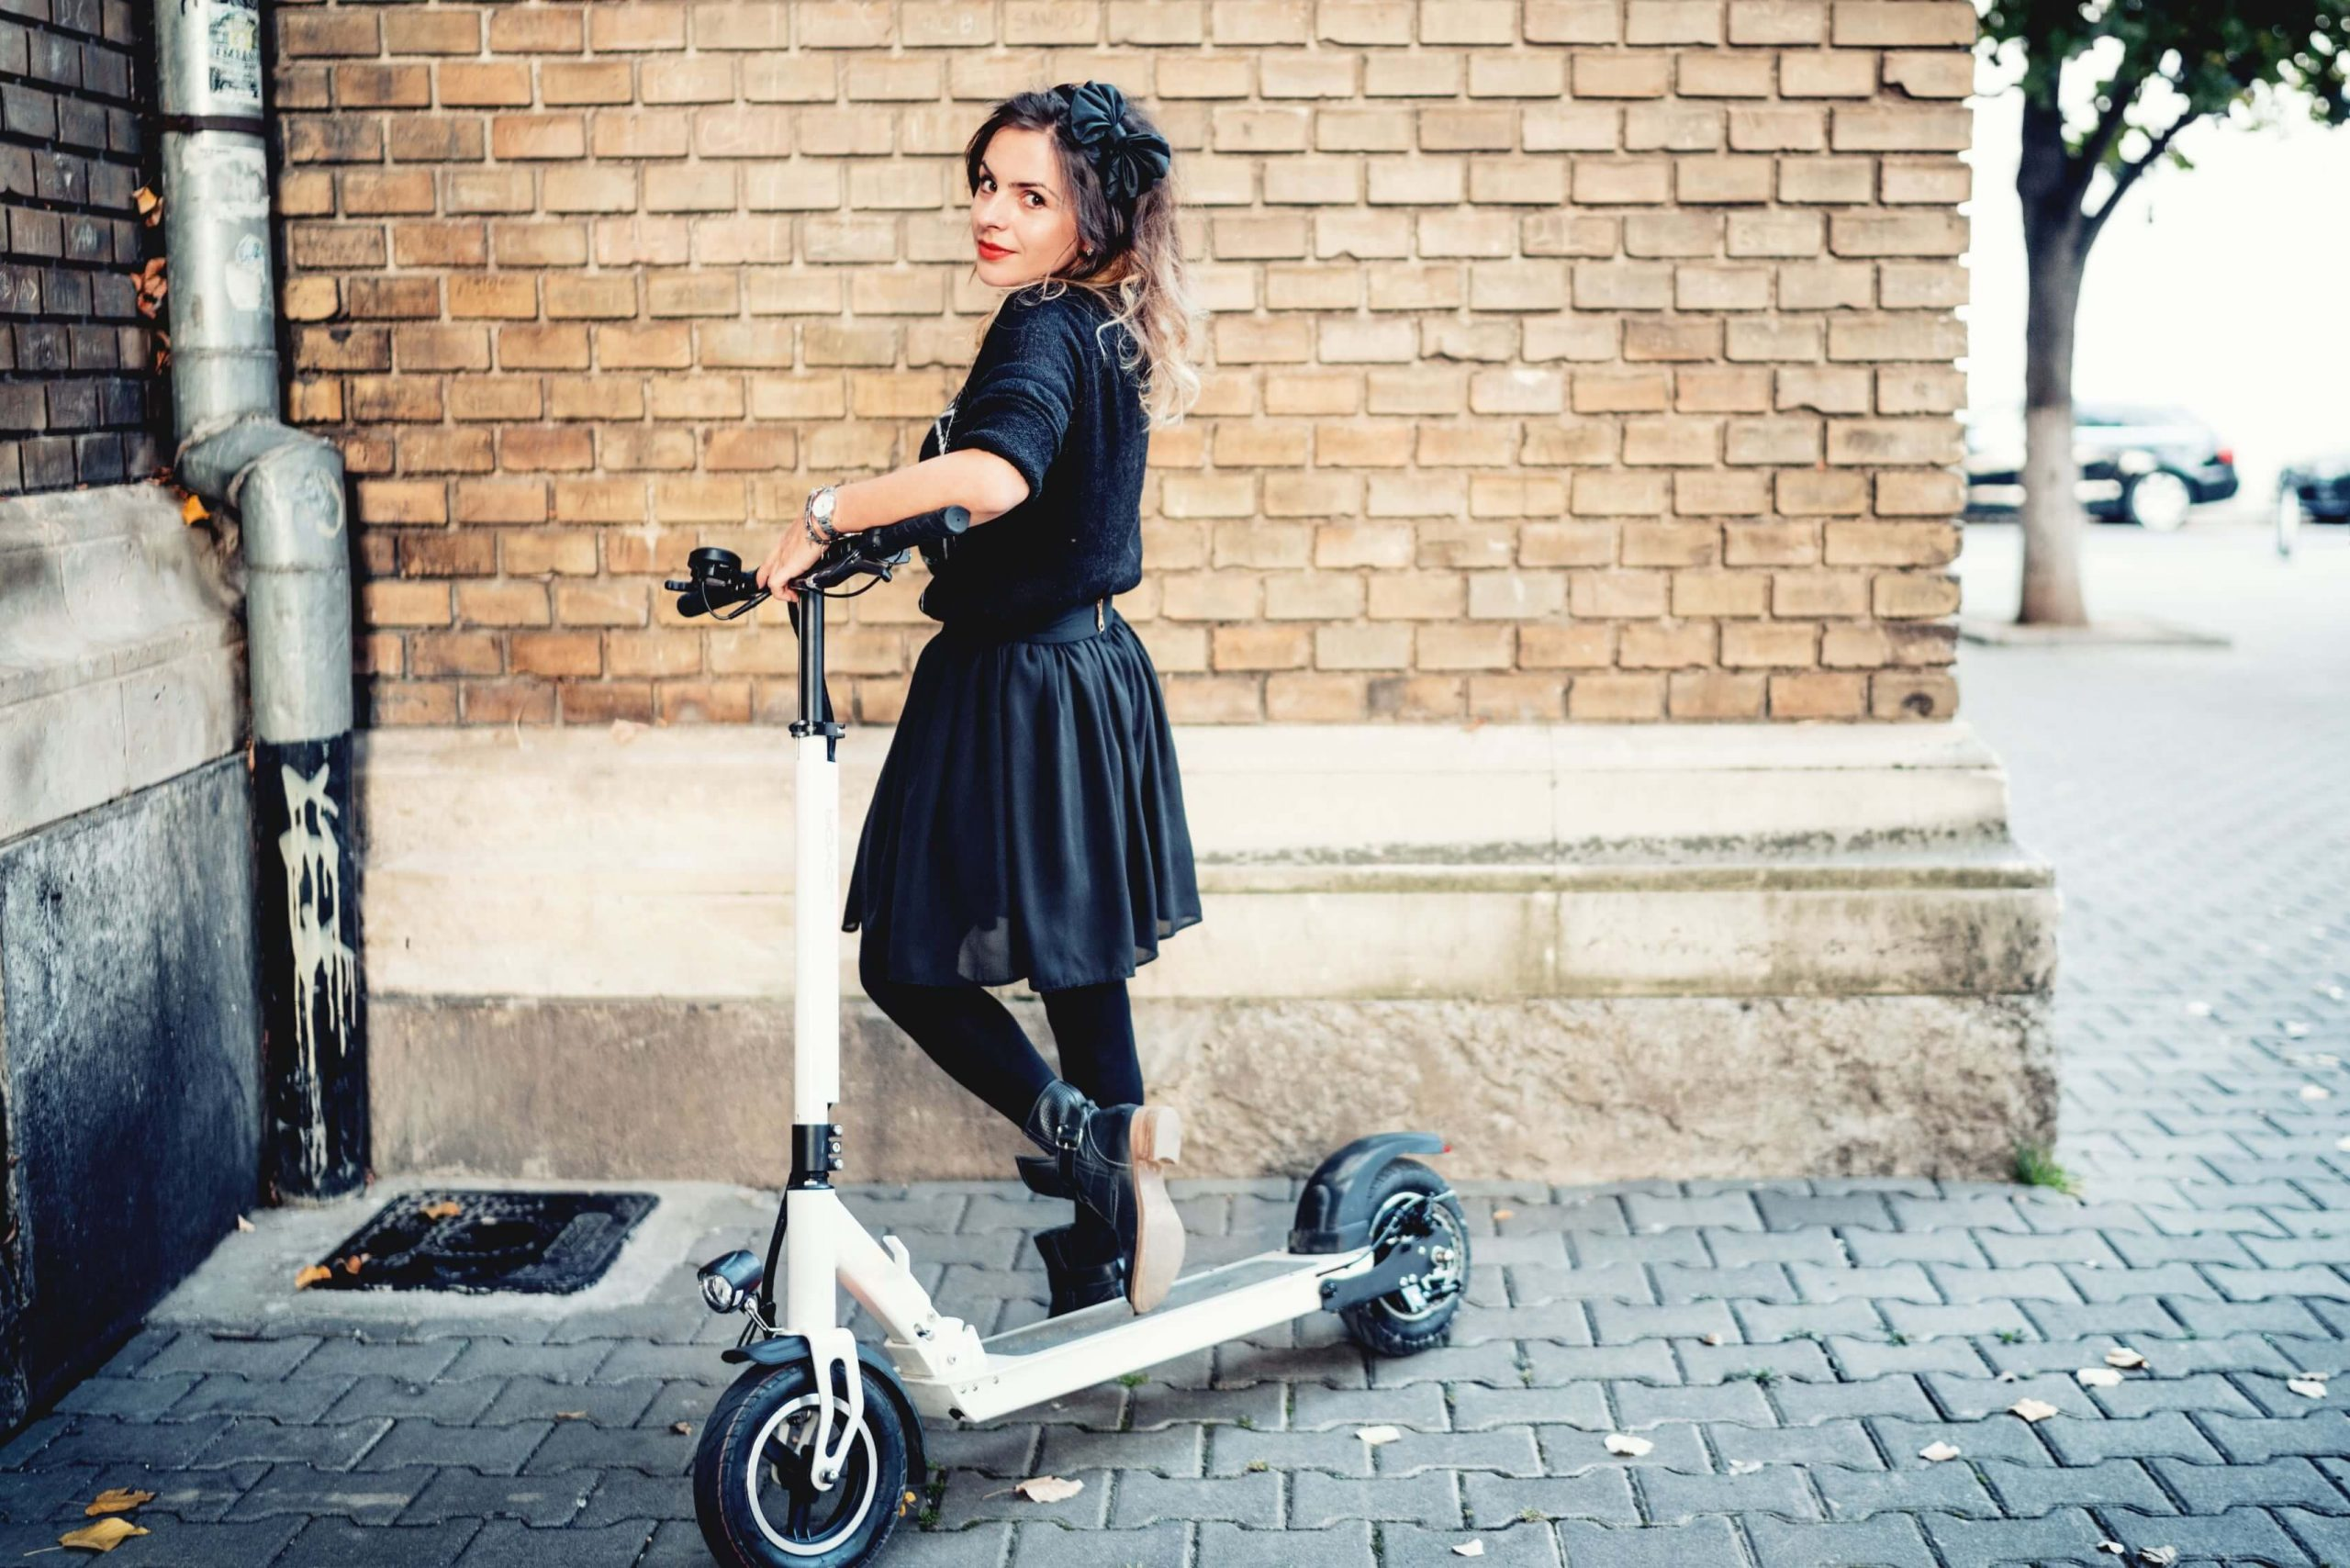 Top 10 Fastest Electric Scooters In 2020 - Go FASTER But With Caution